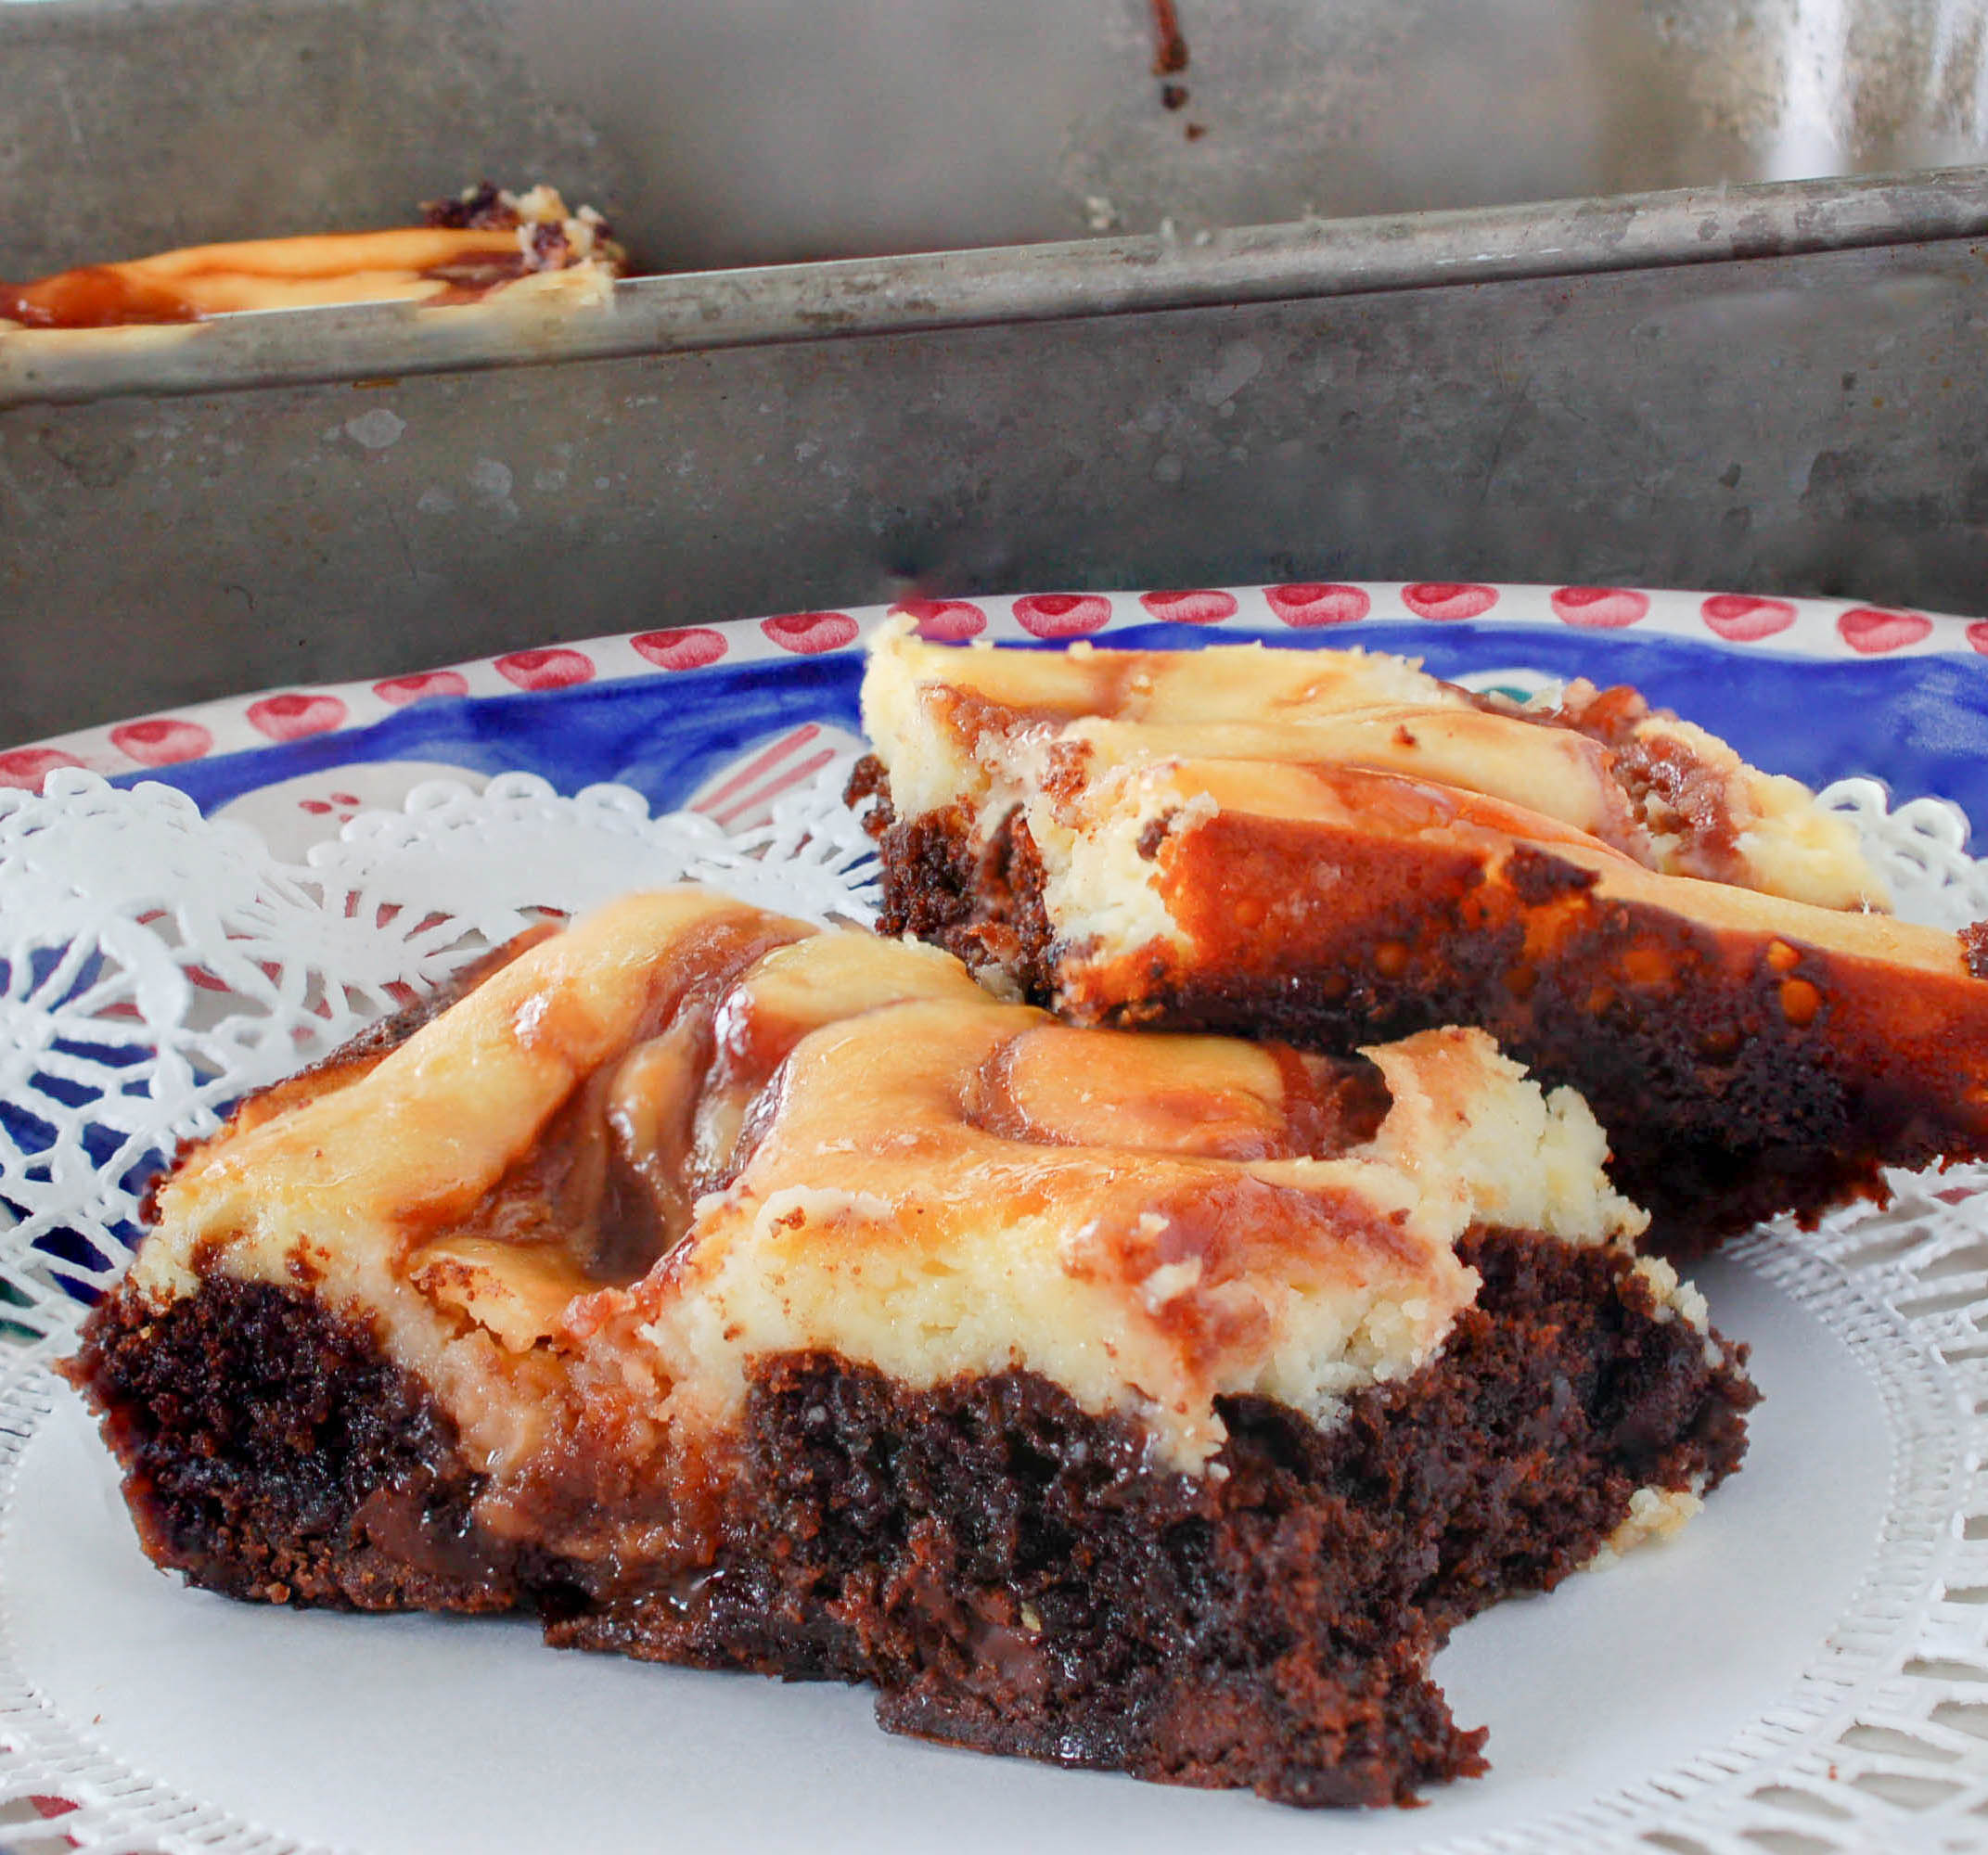 swirled cheesecake brownie3 (1 of 1).jpg